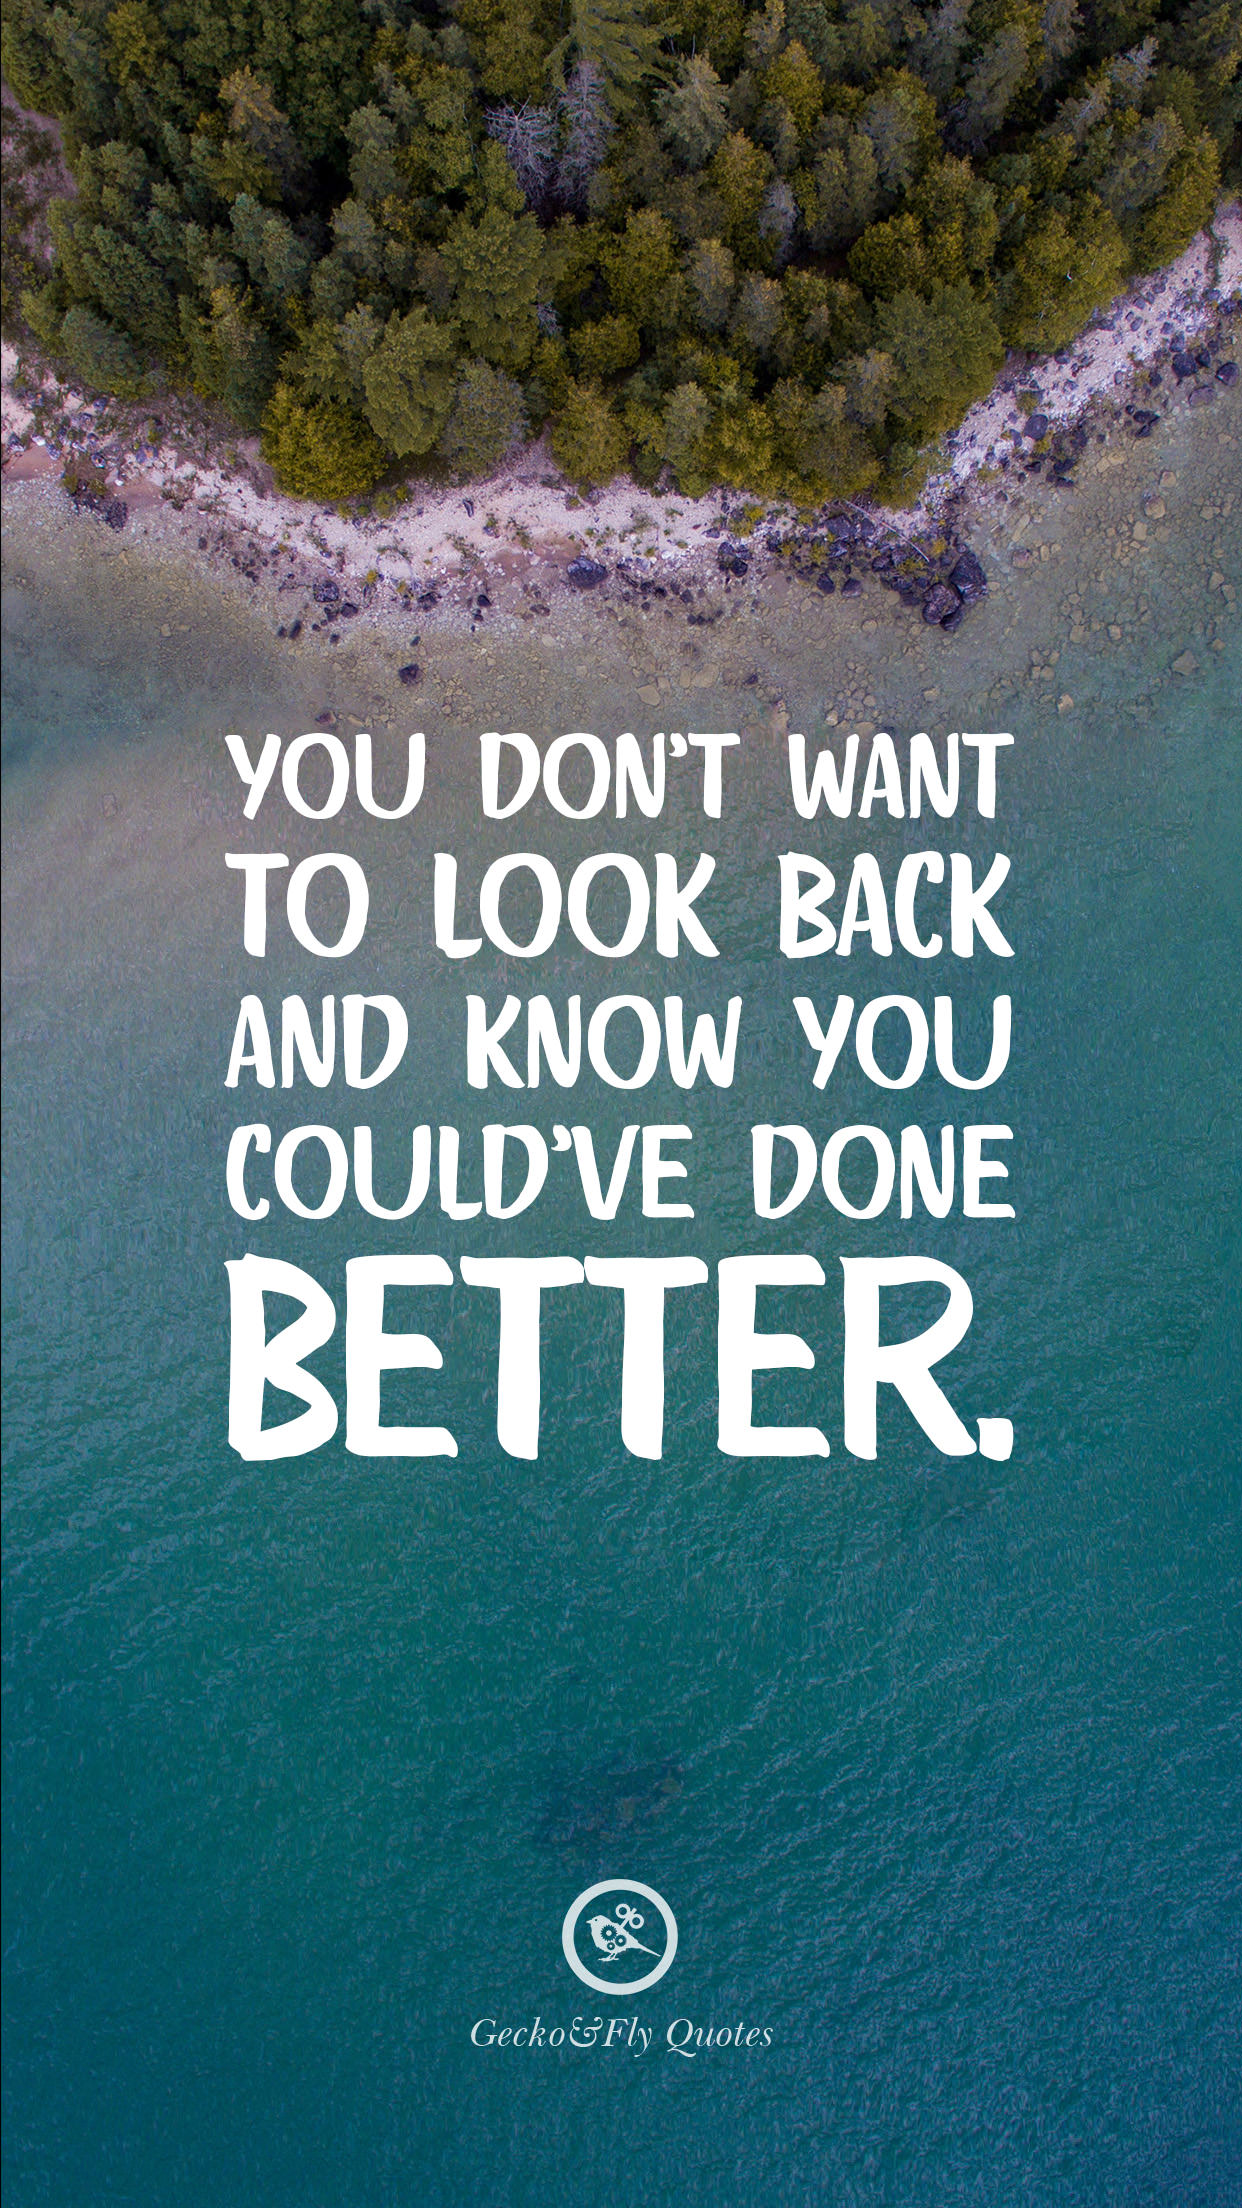 Chances Quotes Wallpaper 100 Inspirational And Motivational Iphone Hd Wallpapers Quotes